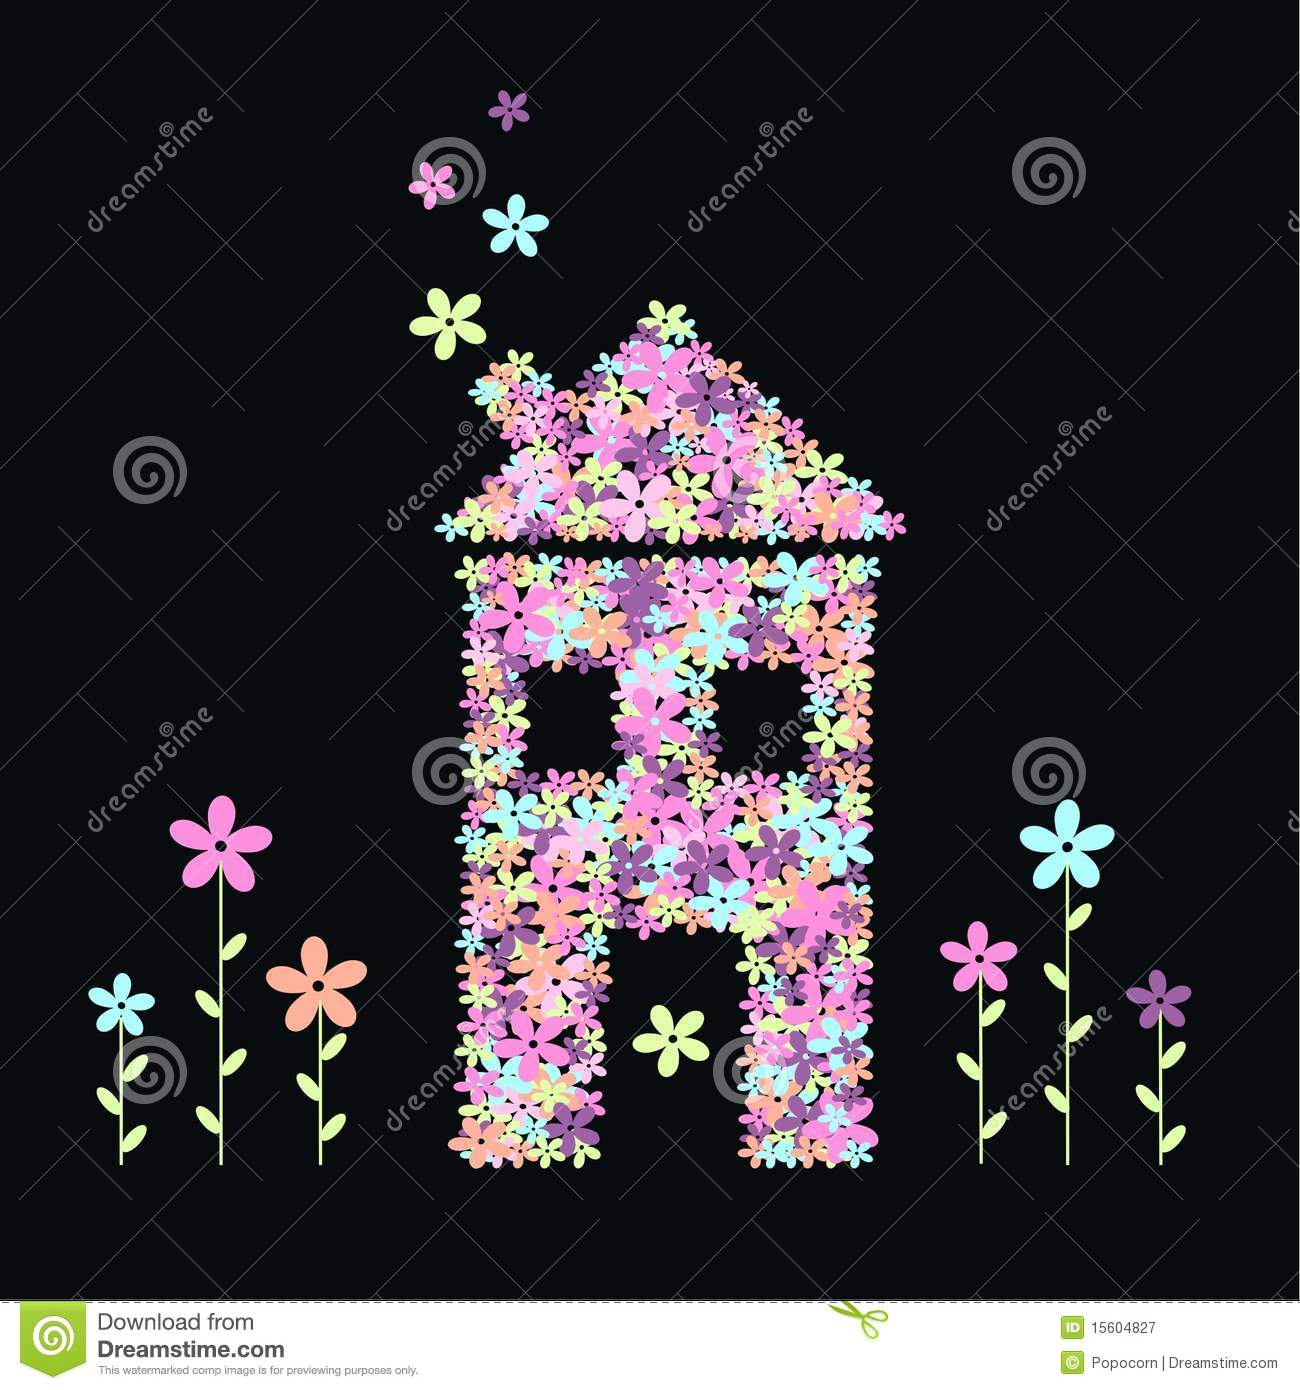 House Flowers Royalty Free Stock graphy Image